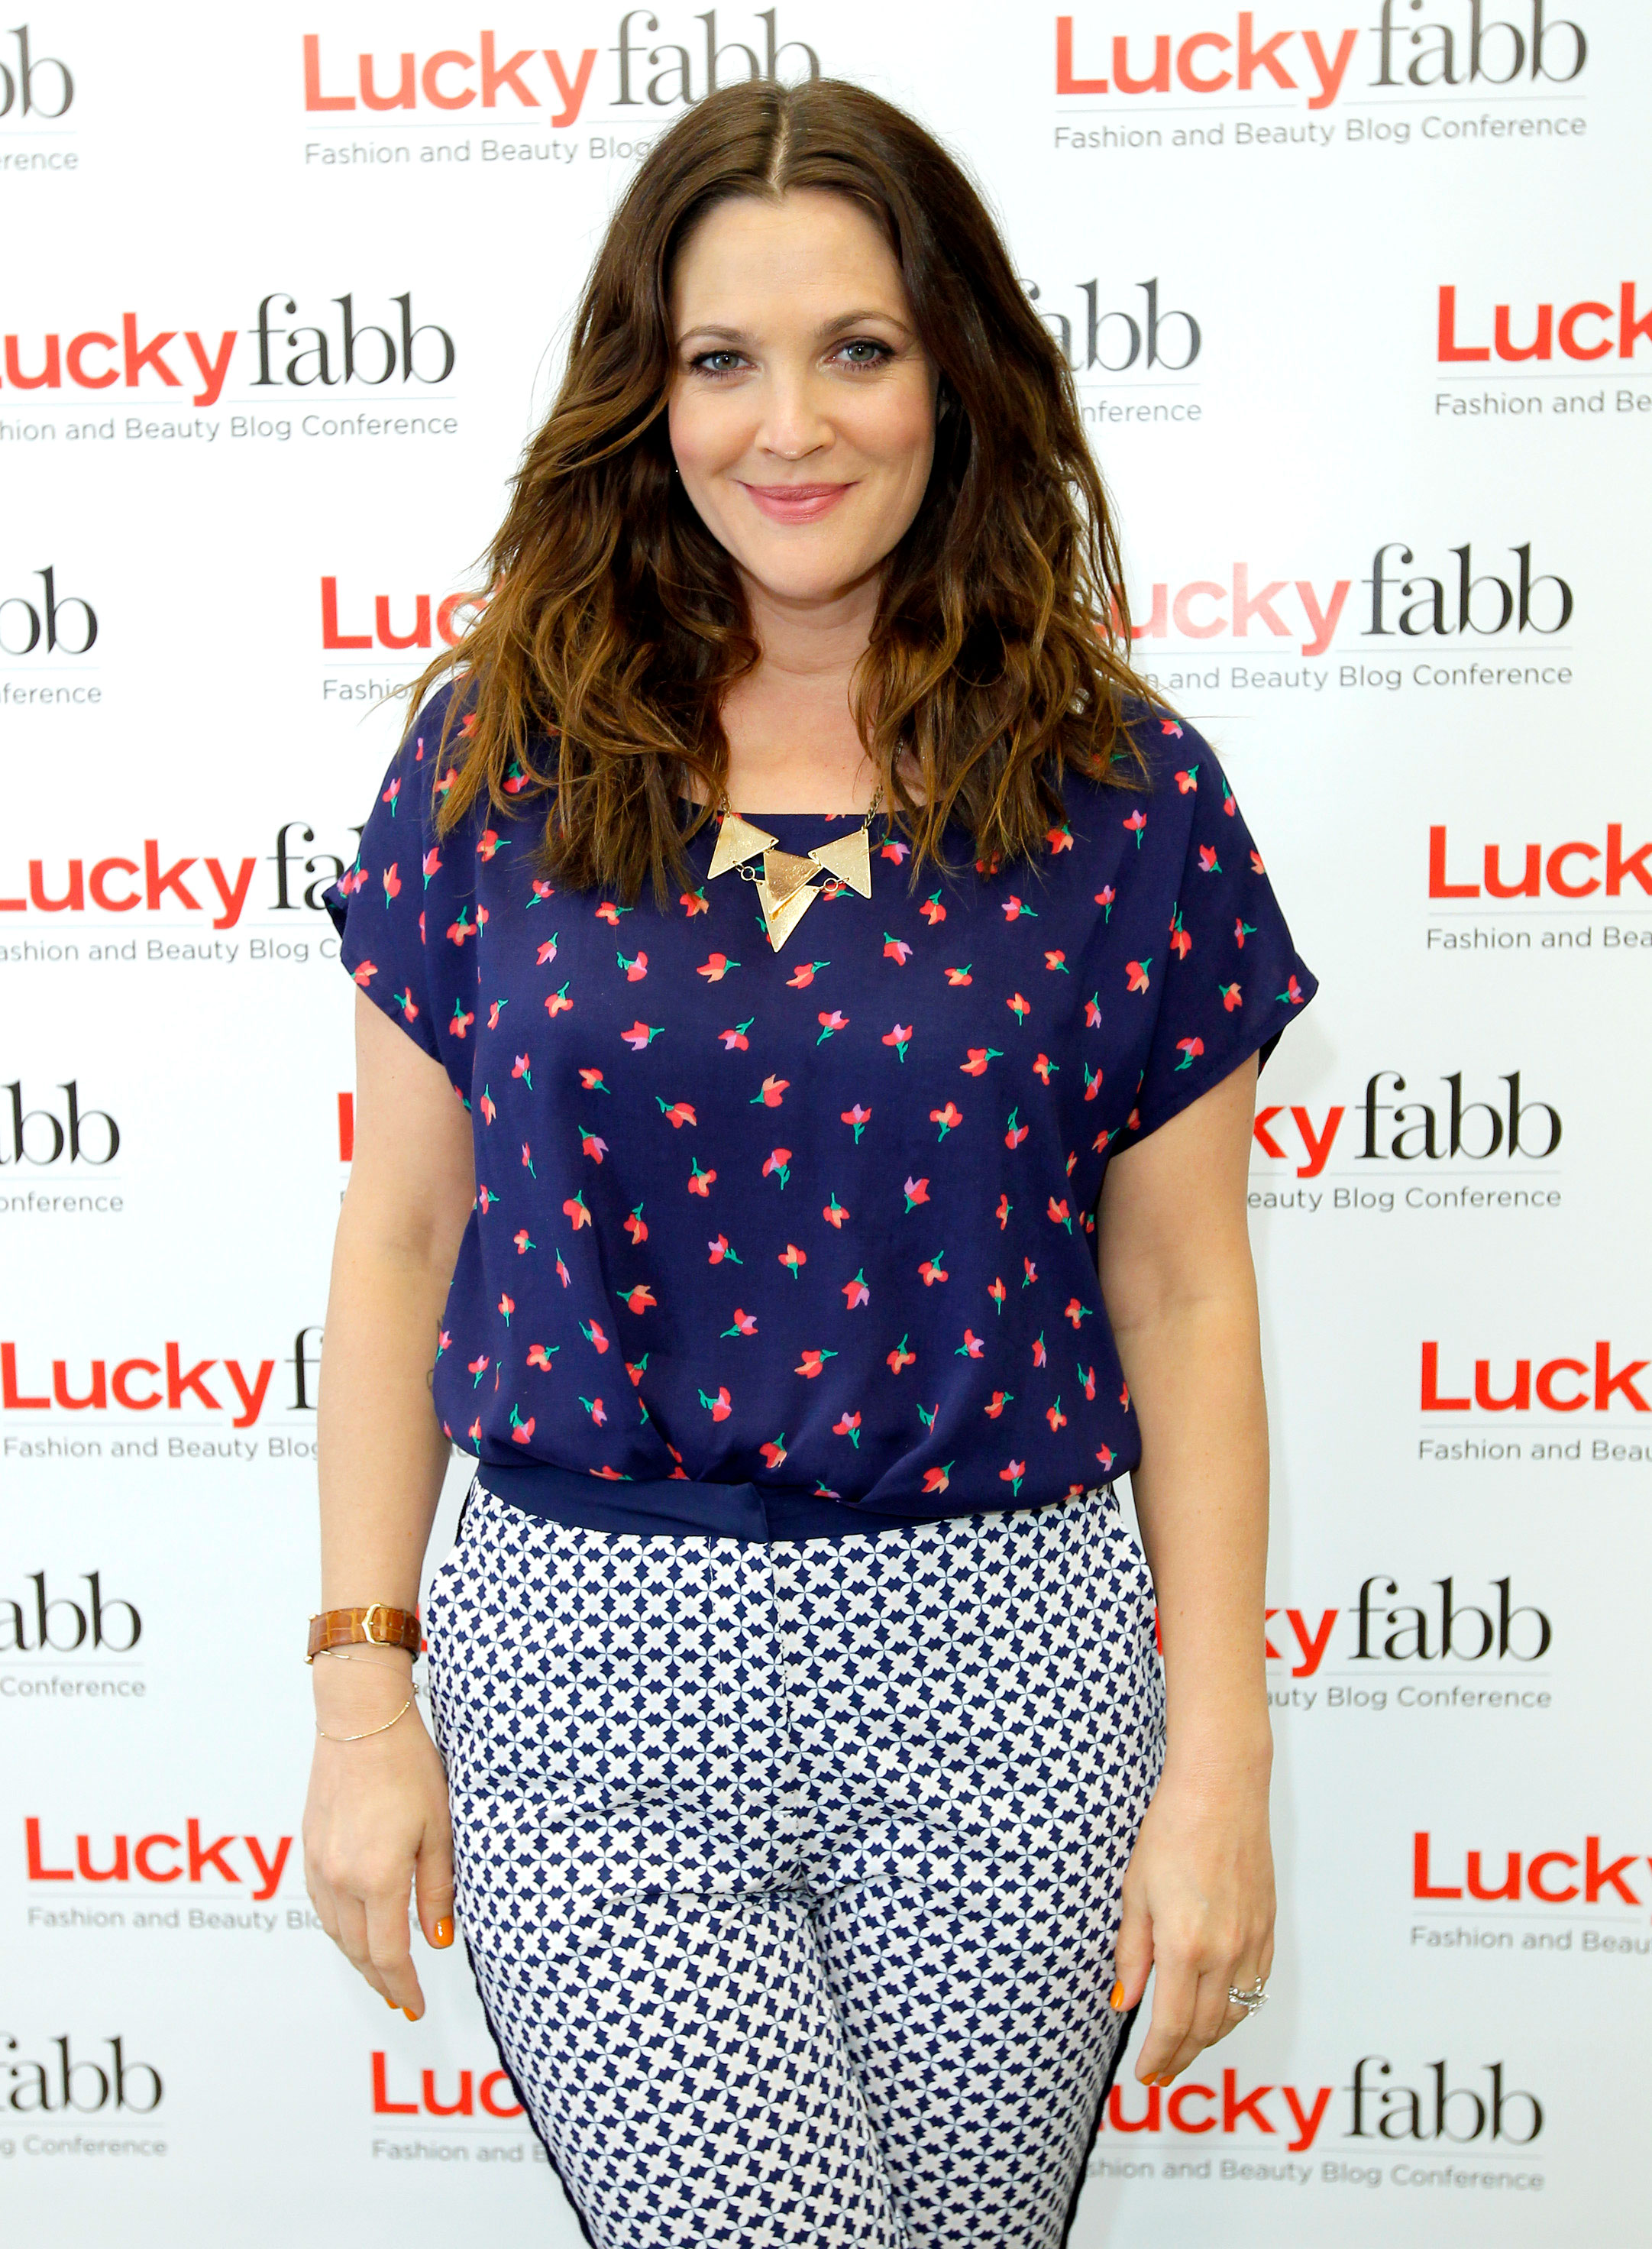 Drew Barrymore's Body Through the Years - Six months after welcoming her first daughter, Olive, Barrymore attended a Lucky magazine event in Beverly Hills.